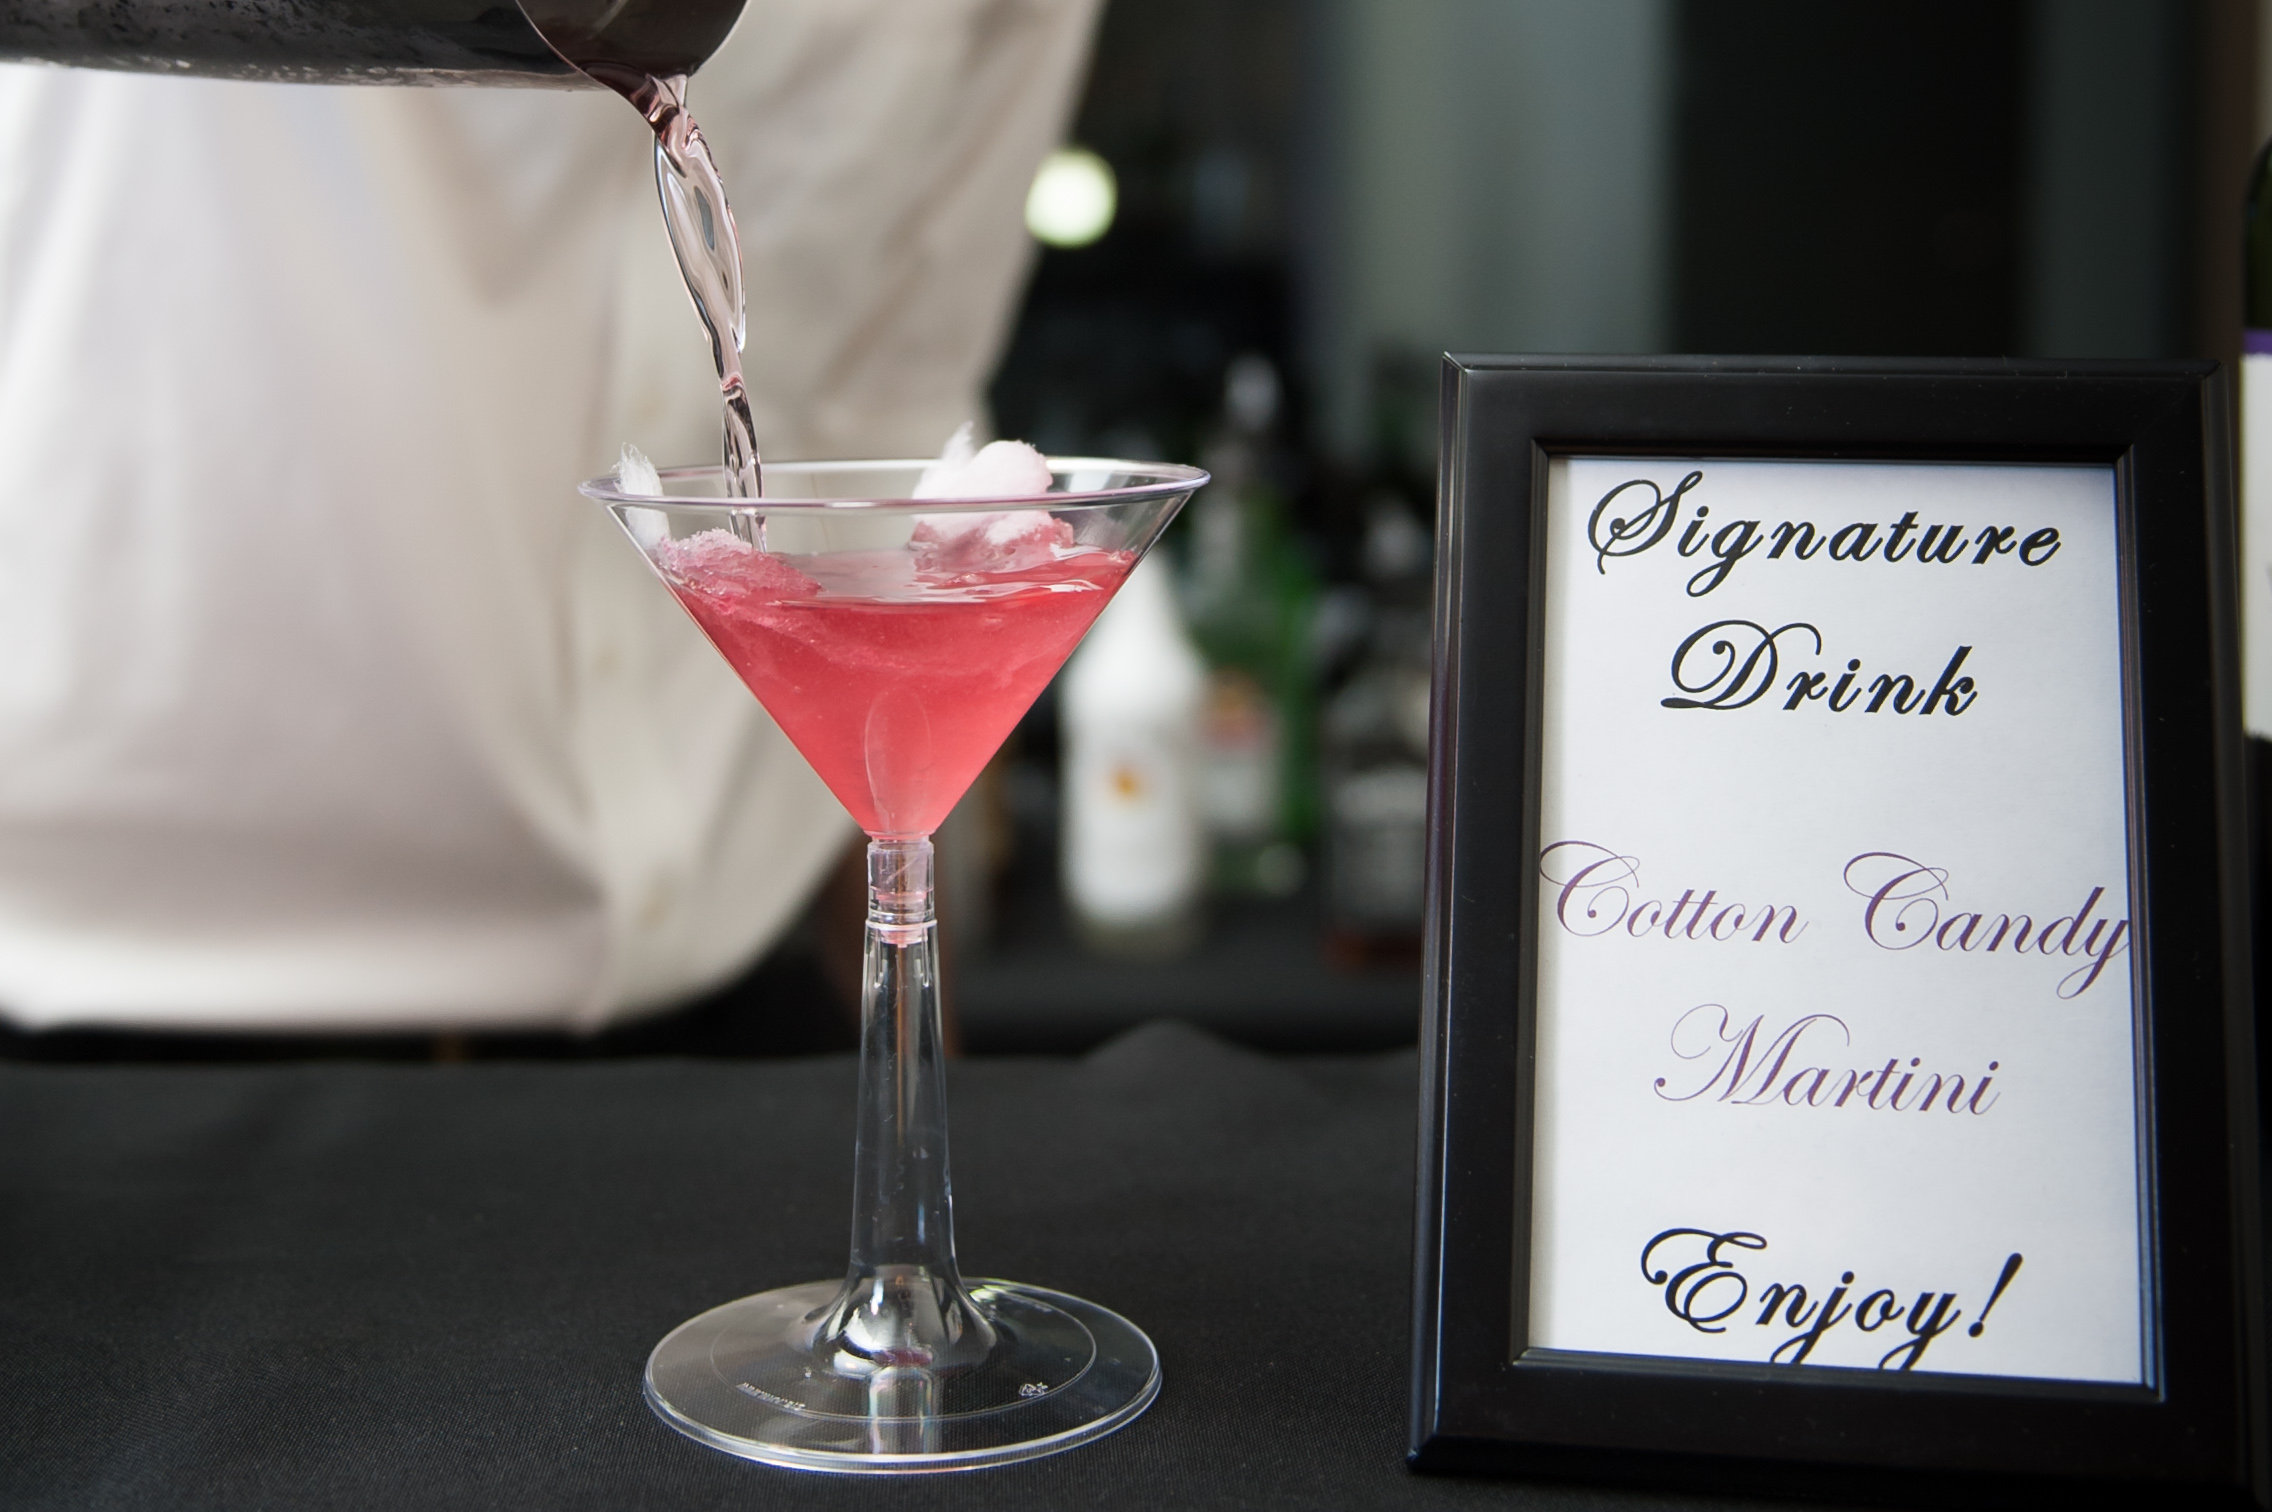 Cocktails poured over fluffy cotton candy were as much a feast for the eyes as for the lips!